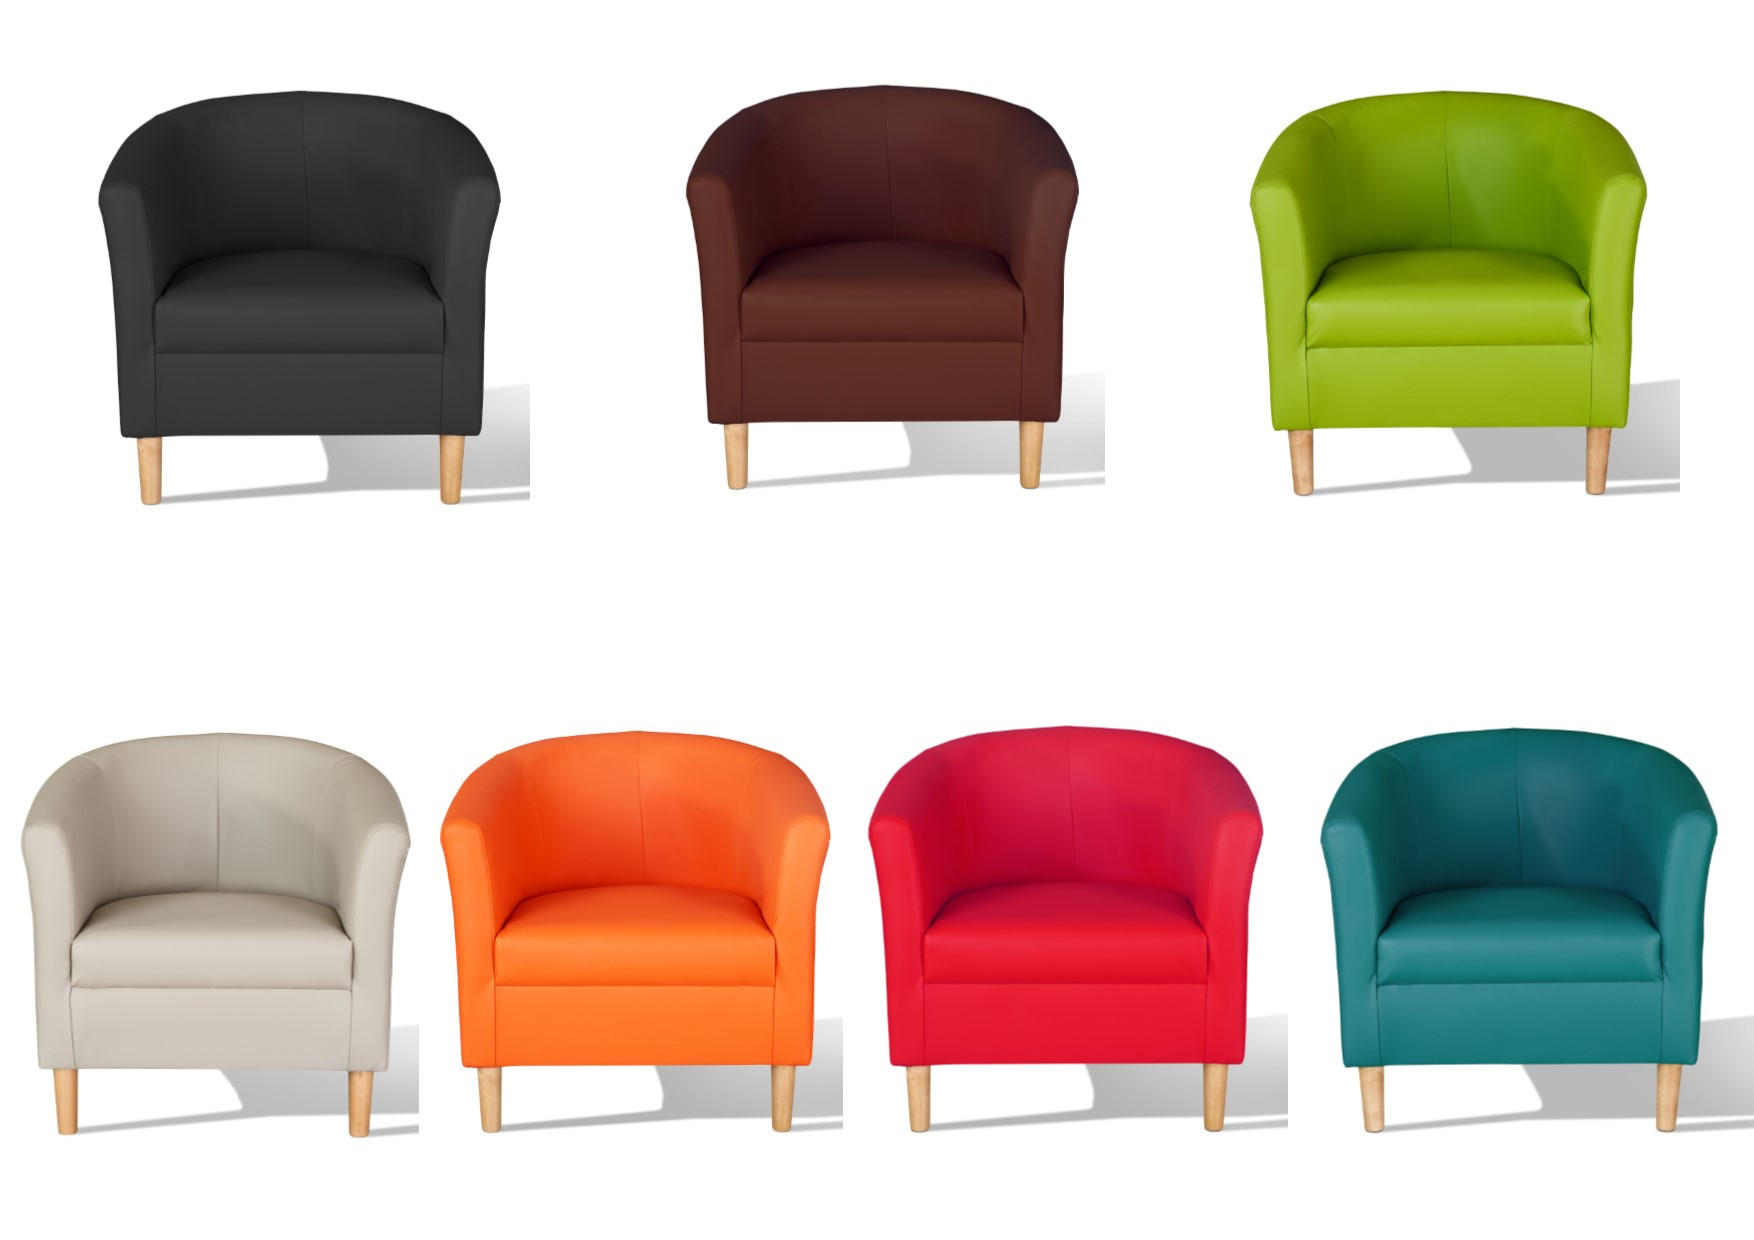 Details About Hamony Faux Leather Tub Chairs – Black, Mocha, Chestnut, Red, Teal, Green Pertaining To Faux Leather Barrel Chairs (View 9 of 15)